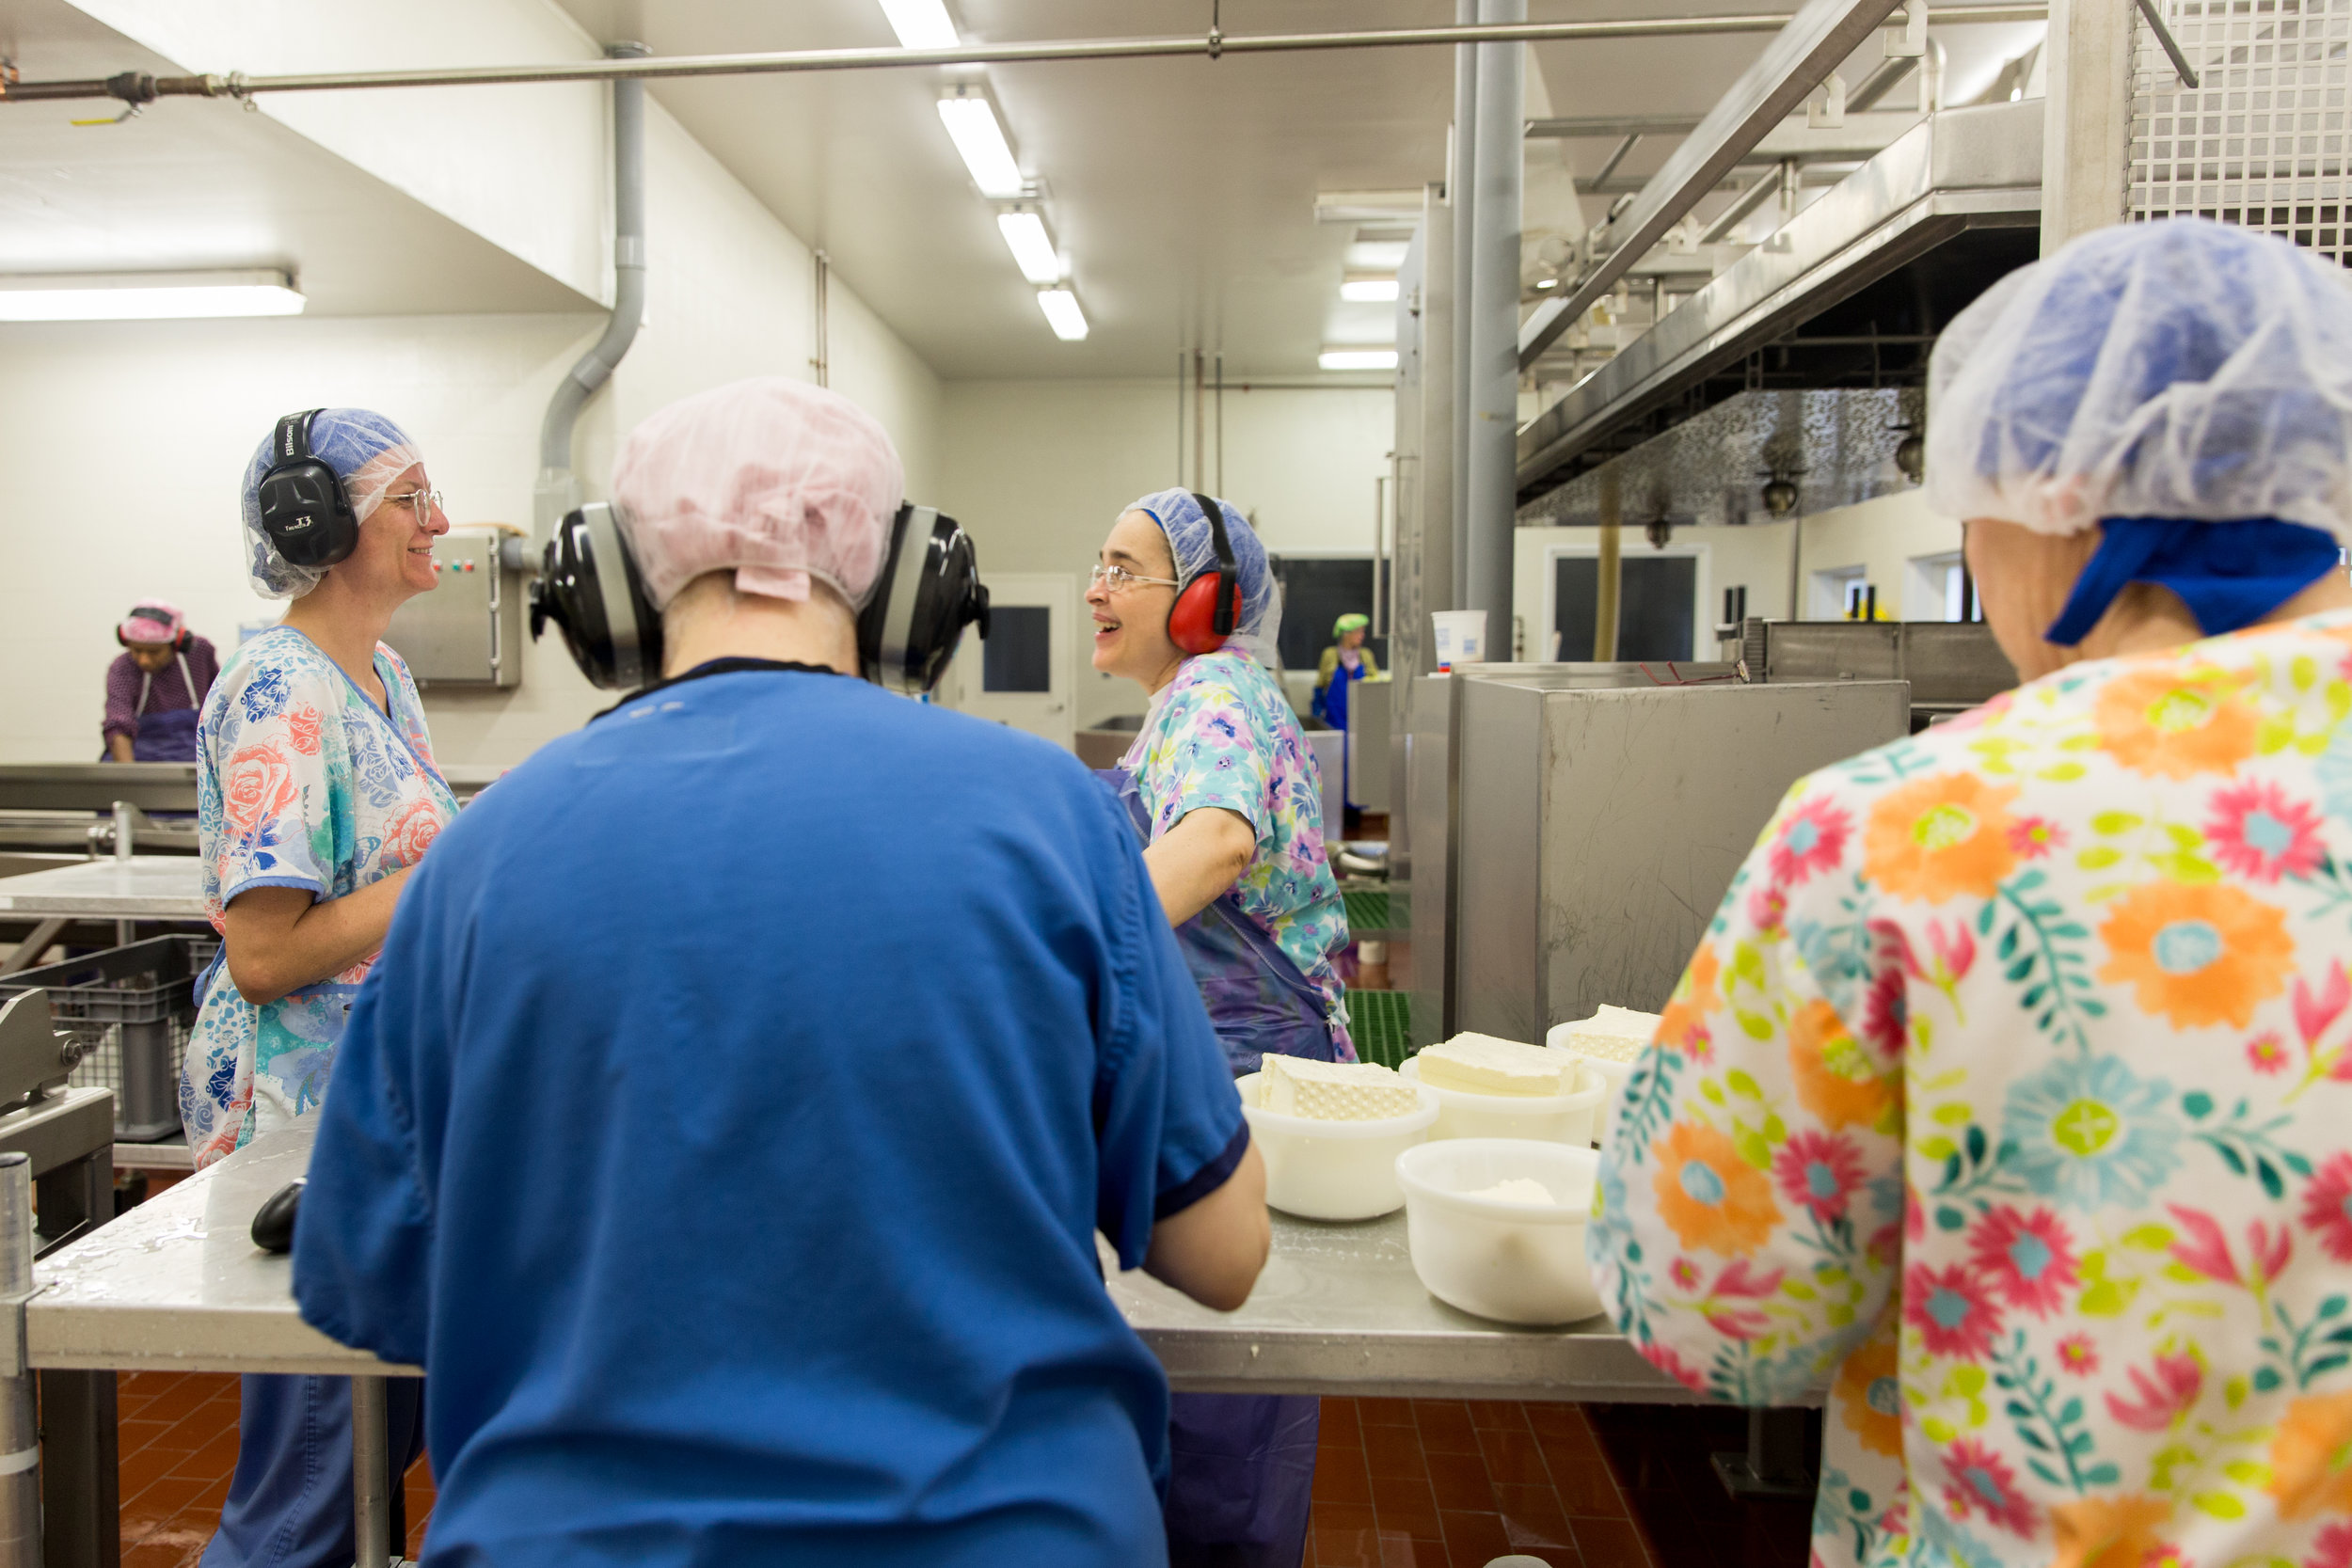 The sisters squeeze water from the gouda cheese before weighing Thursday morning on March 21, 2019 in Crozet, Virginia. Thursday is cheese making day at the monastery and cheese process takes about 6-8 hours from start to finish.